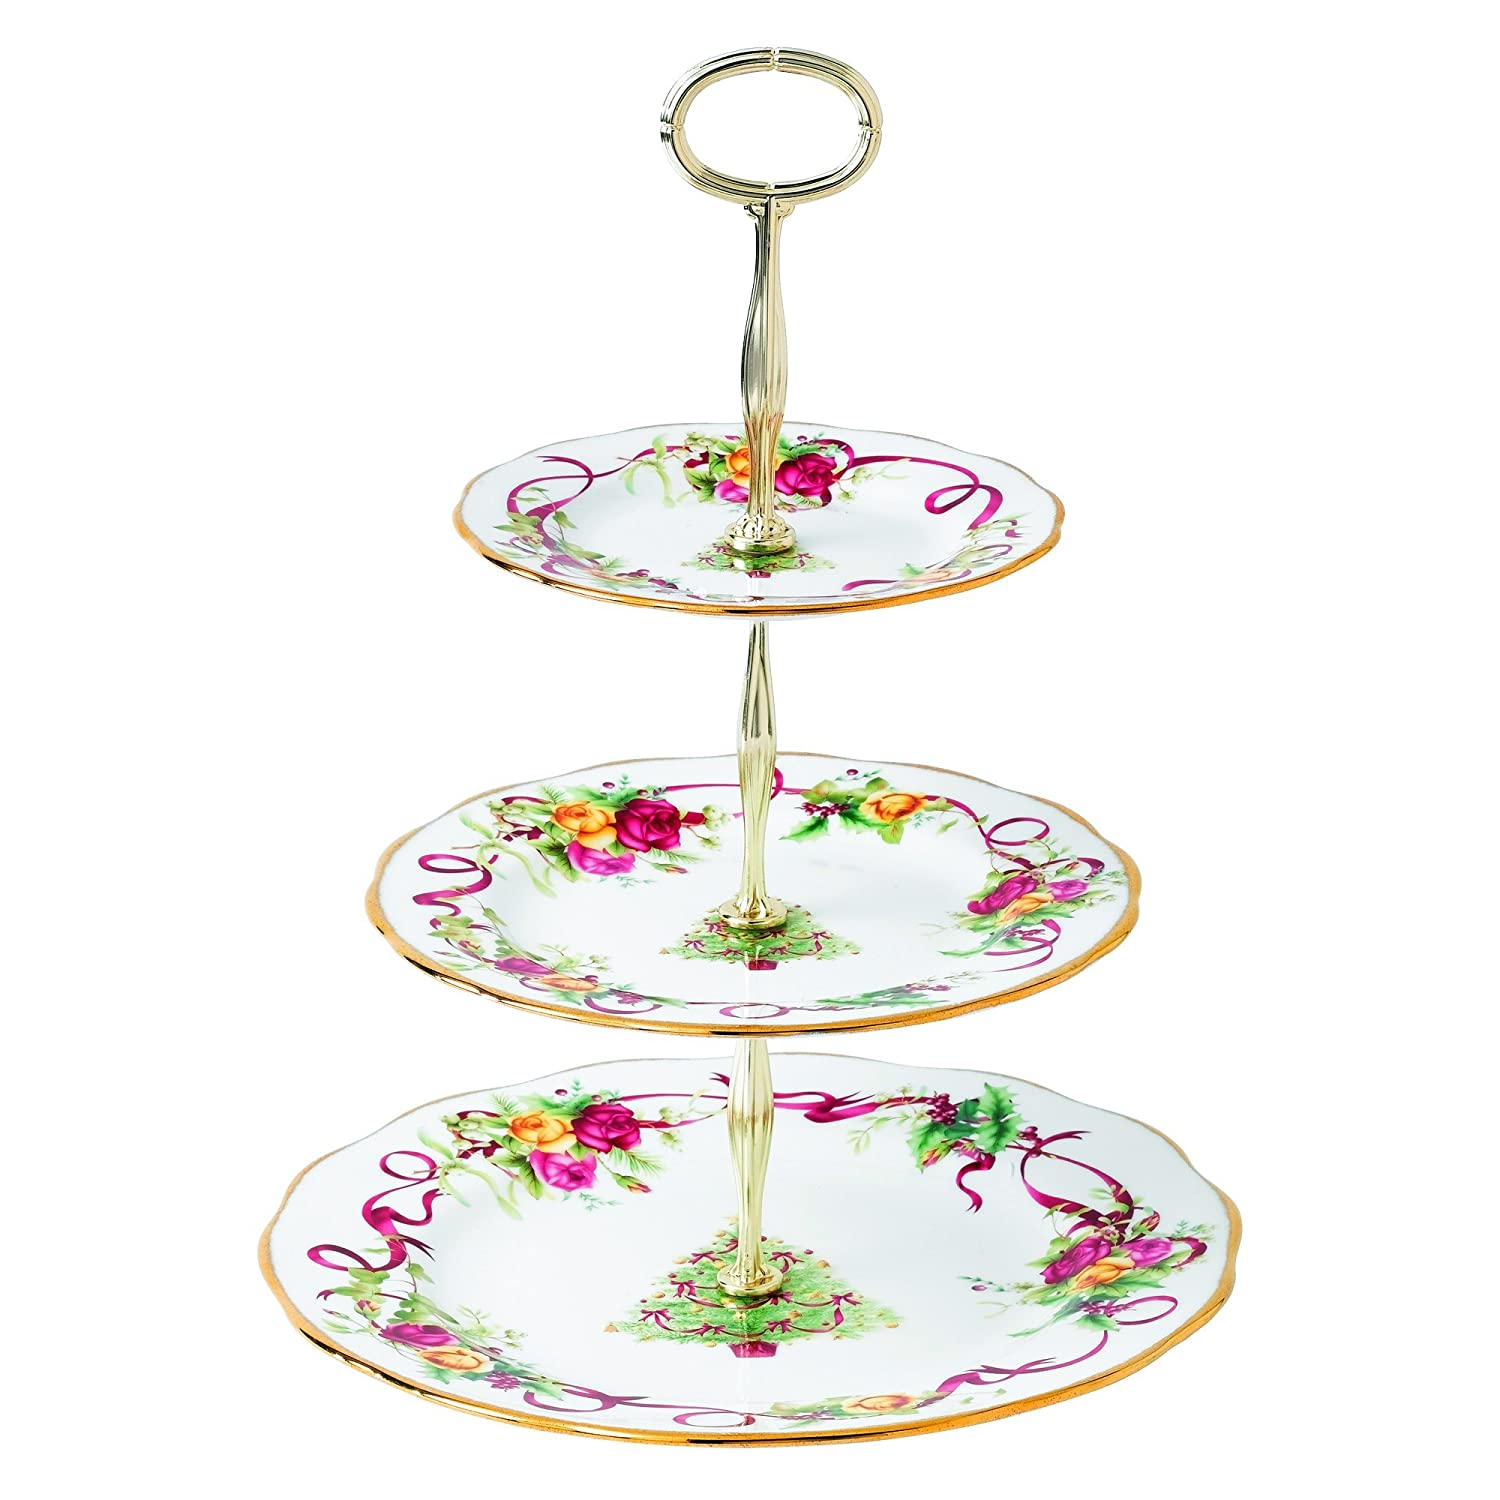 Amazon.com | Old Country Roses Christmas Tree 3-Tier Cake Stand Royal Albert Christmas Cake Stands  sc 1 st  Amazon.com & Amazon.com | Old Country Roses Christmas Tree 3-Tier Cake Stand ...